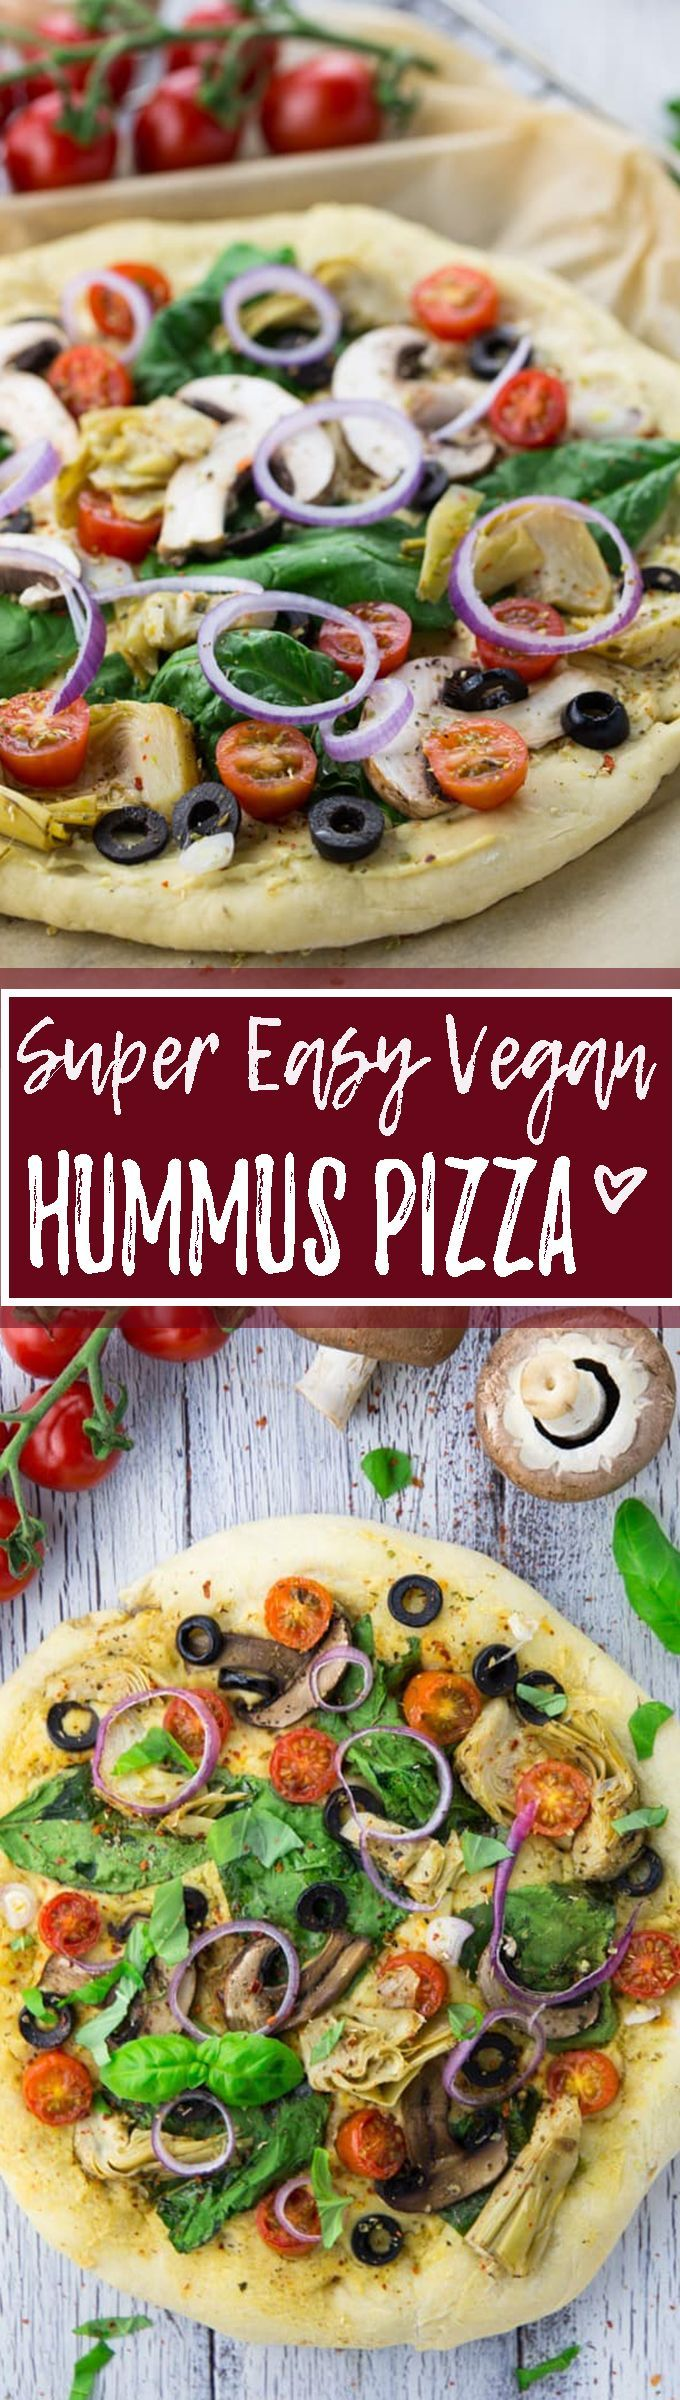 I love hummus and I love pizza. So I thought why not just try hummus pizza?! This veggie pizza with spinach, olives, and artichokes is one of my favorites! So YUMMY!